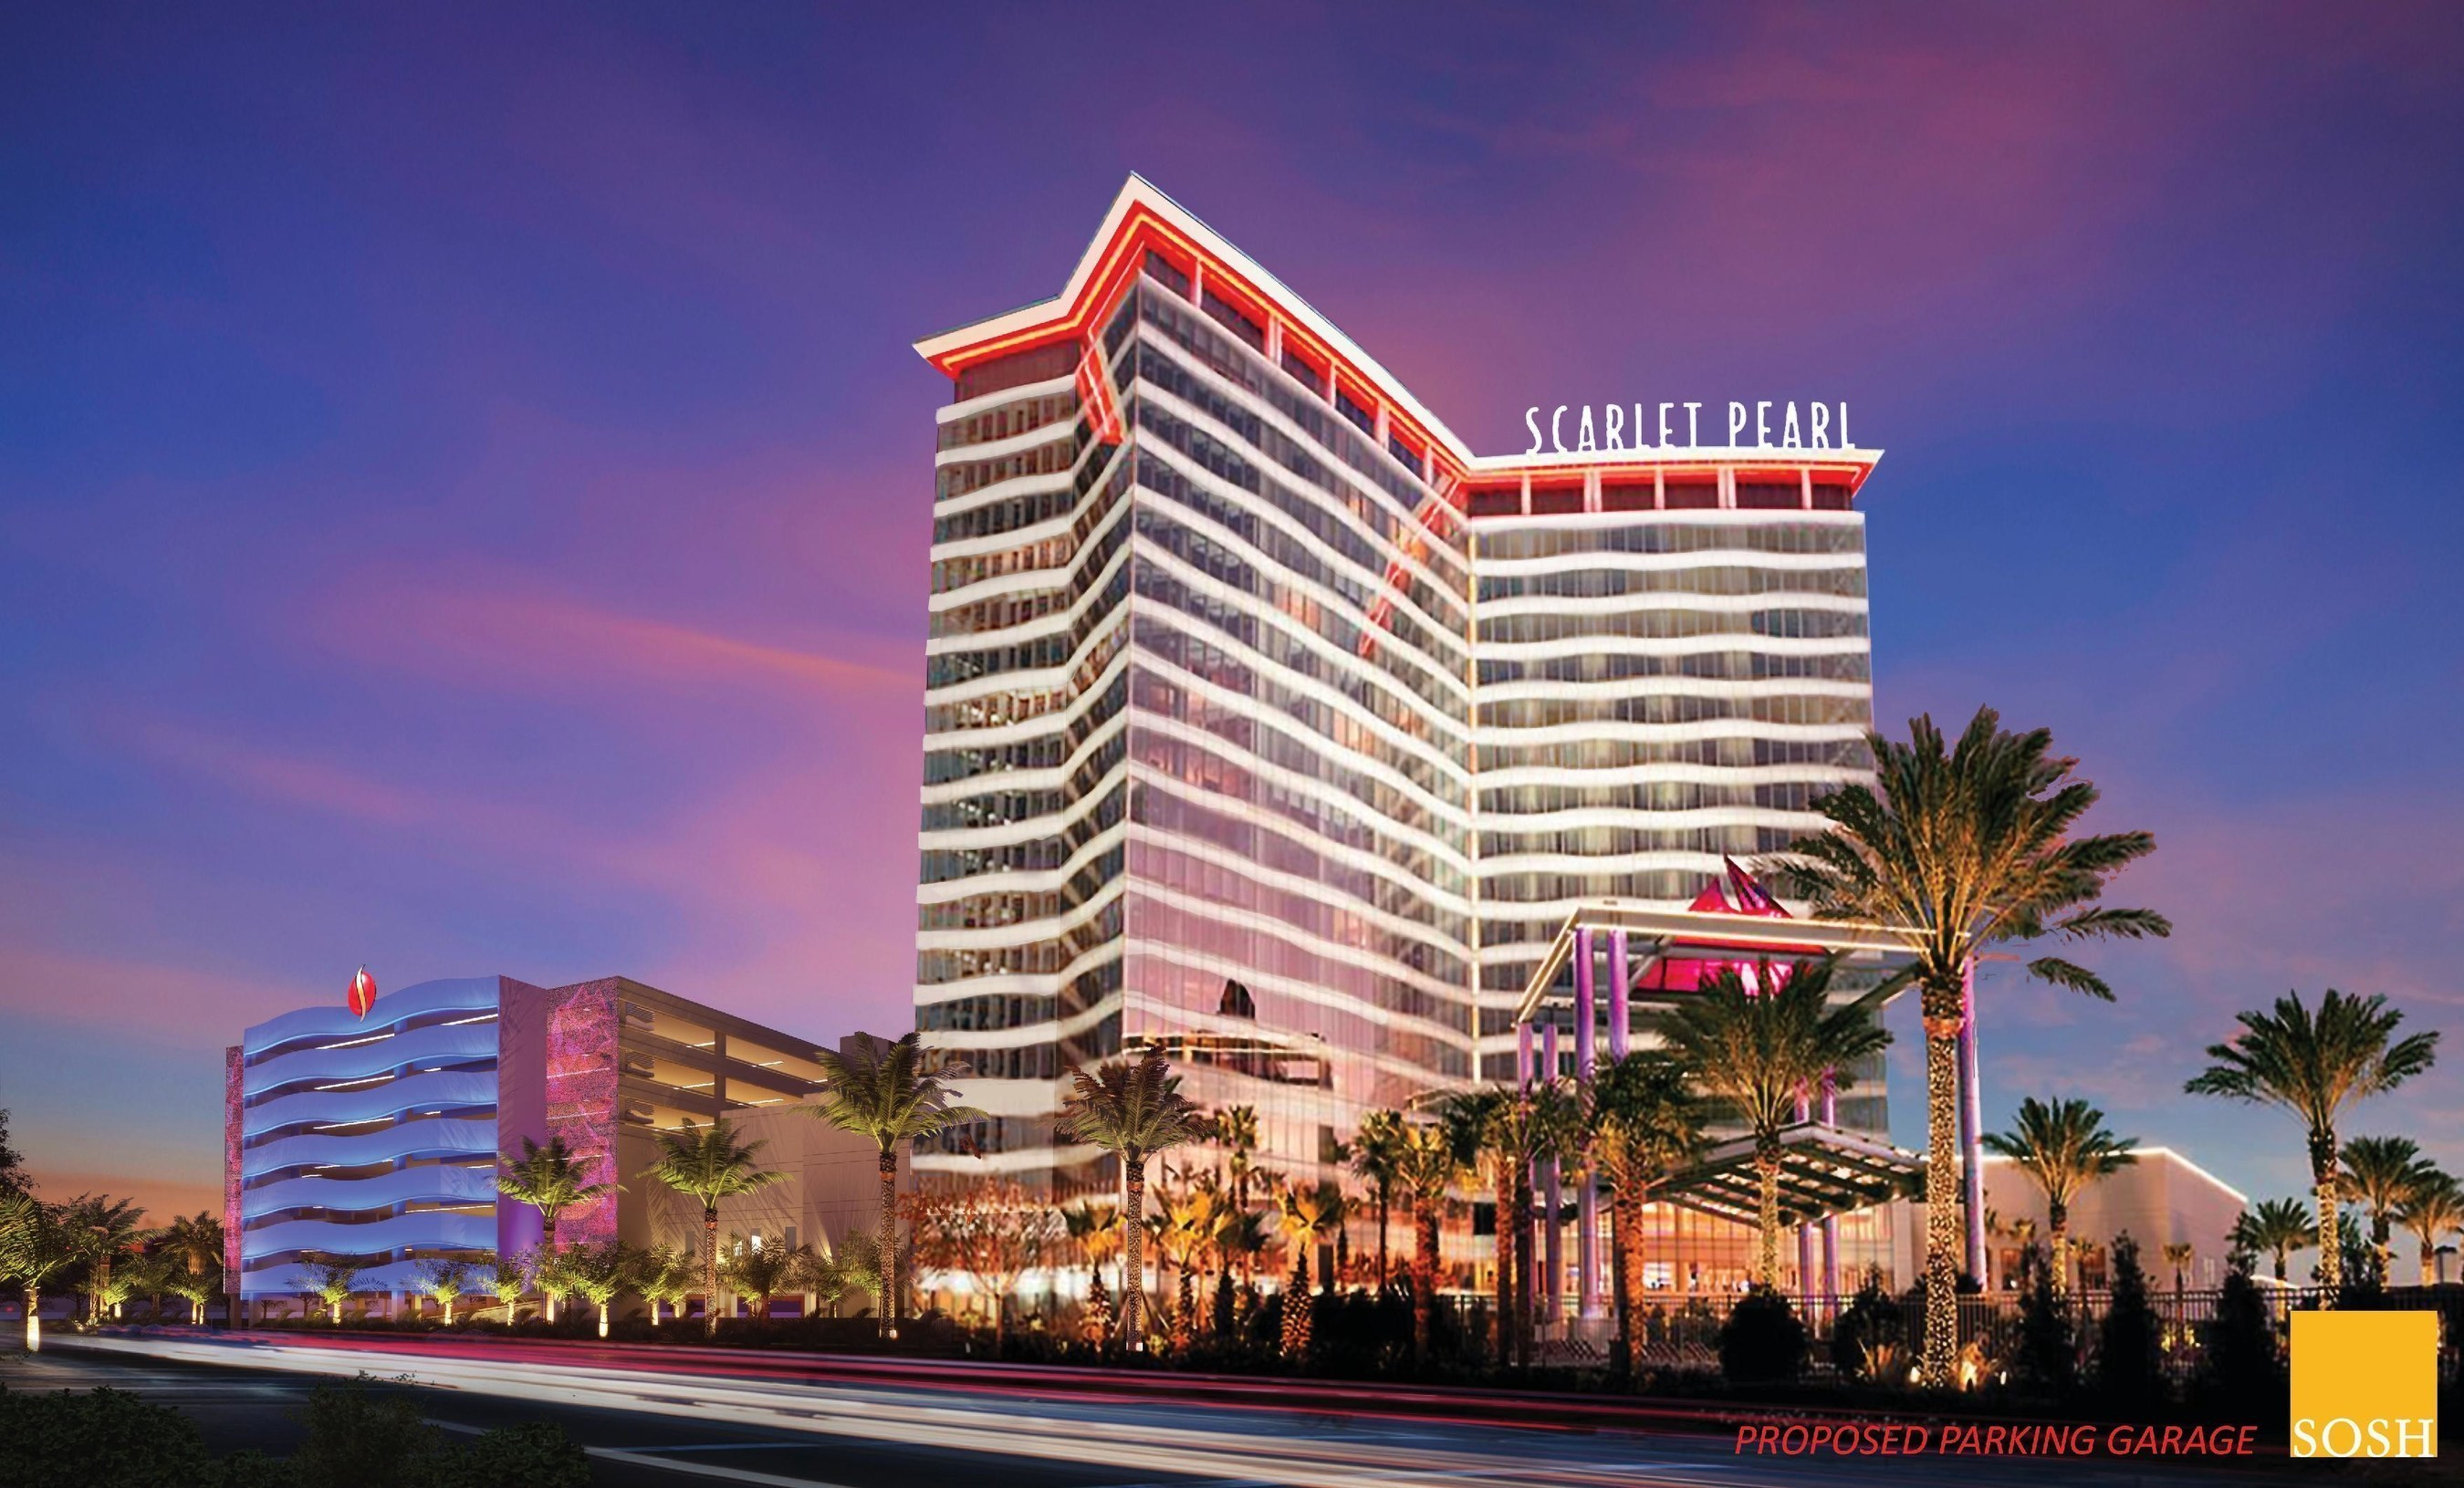 Scarlet Pearl Casino Resort Parking Garage Rendering